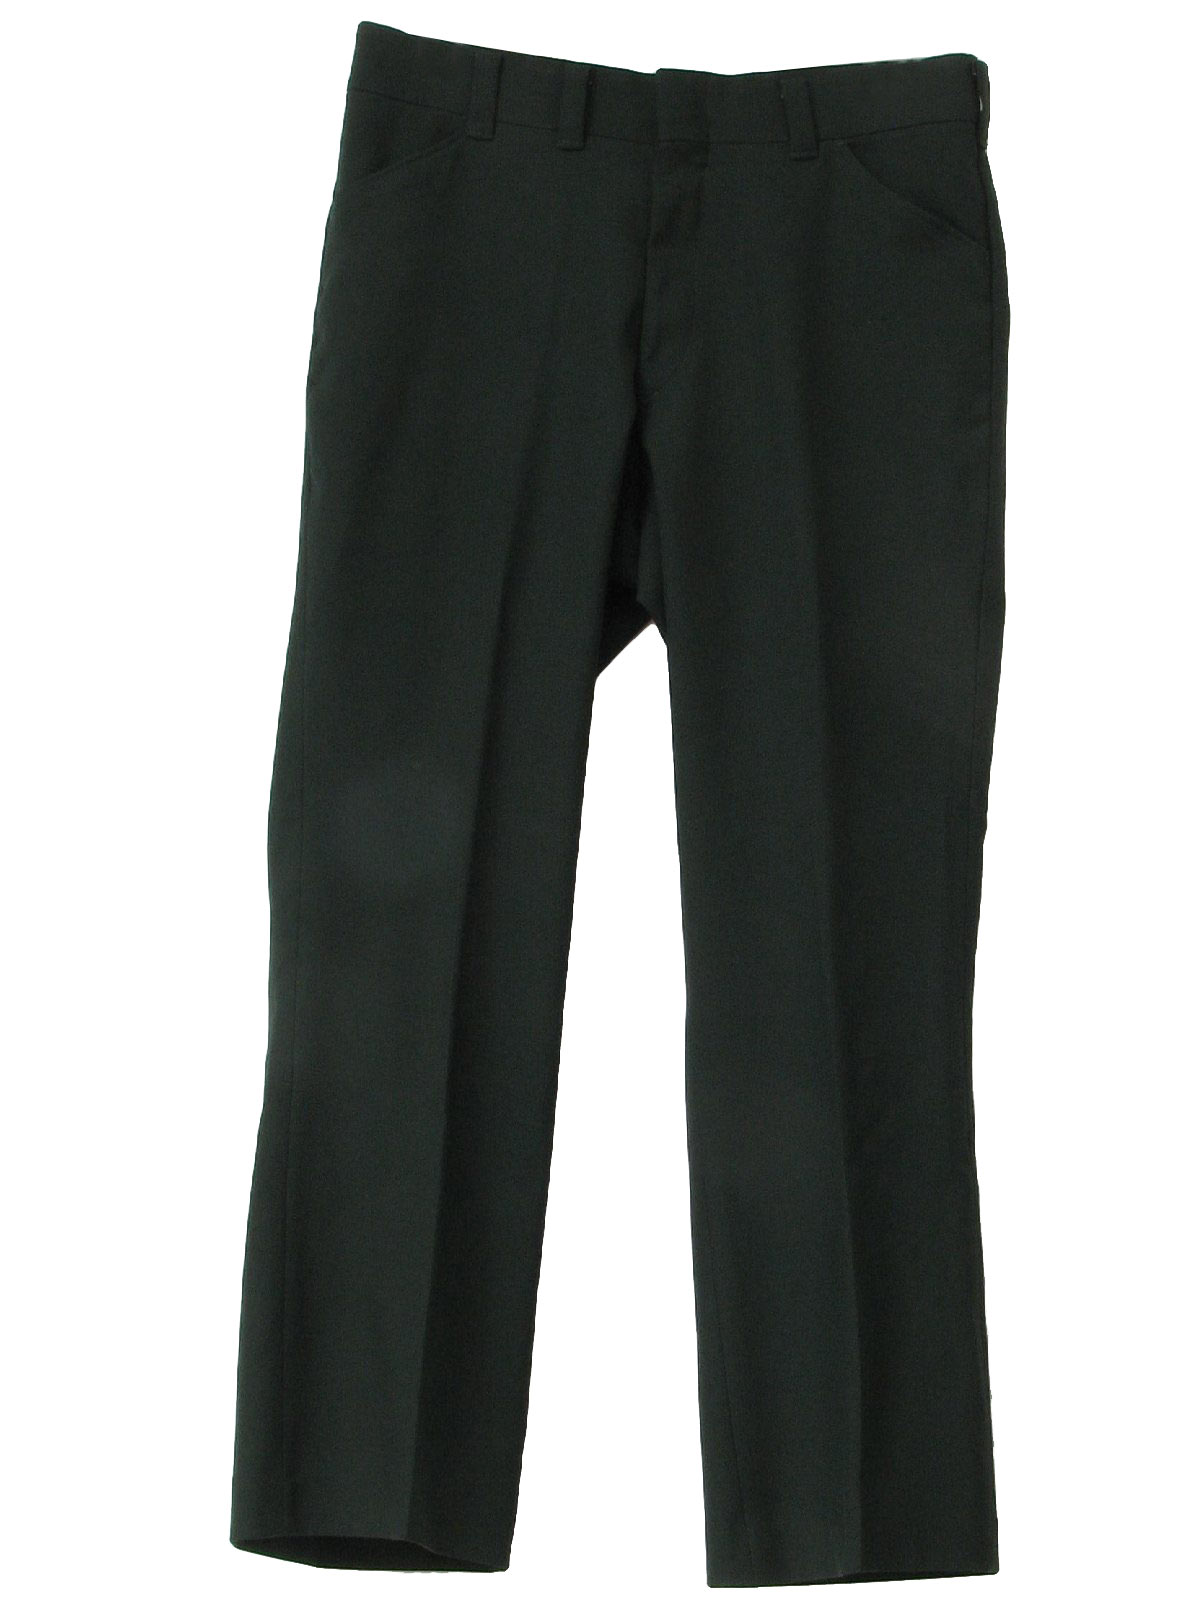 1970 s jc penny mens leisure pants 70s jc penny mens forest green